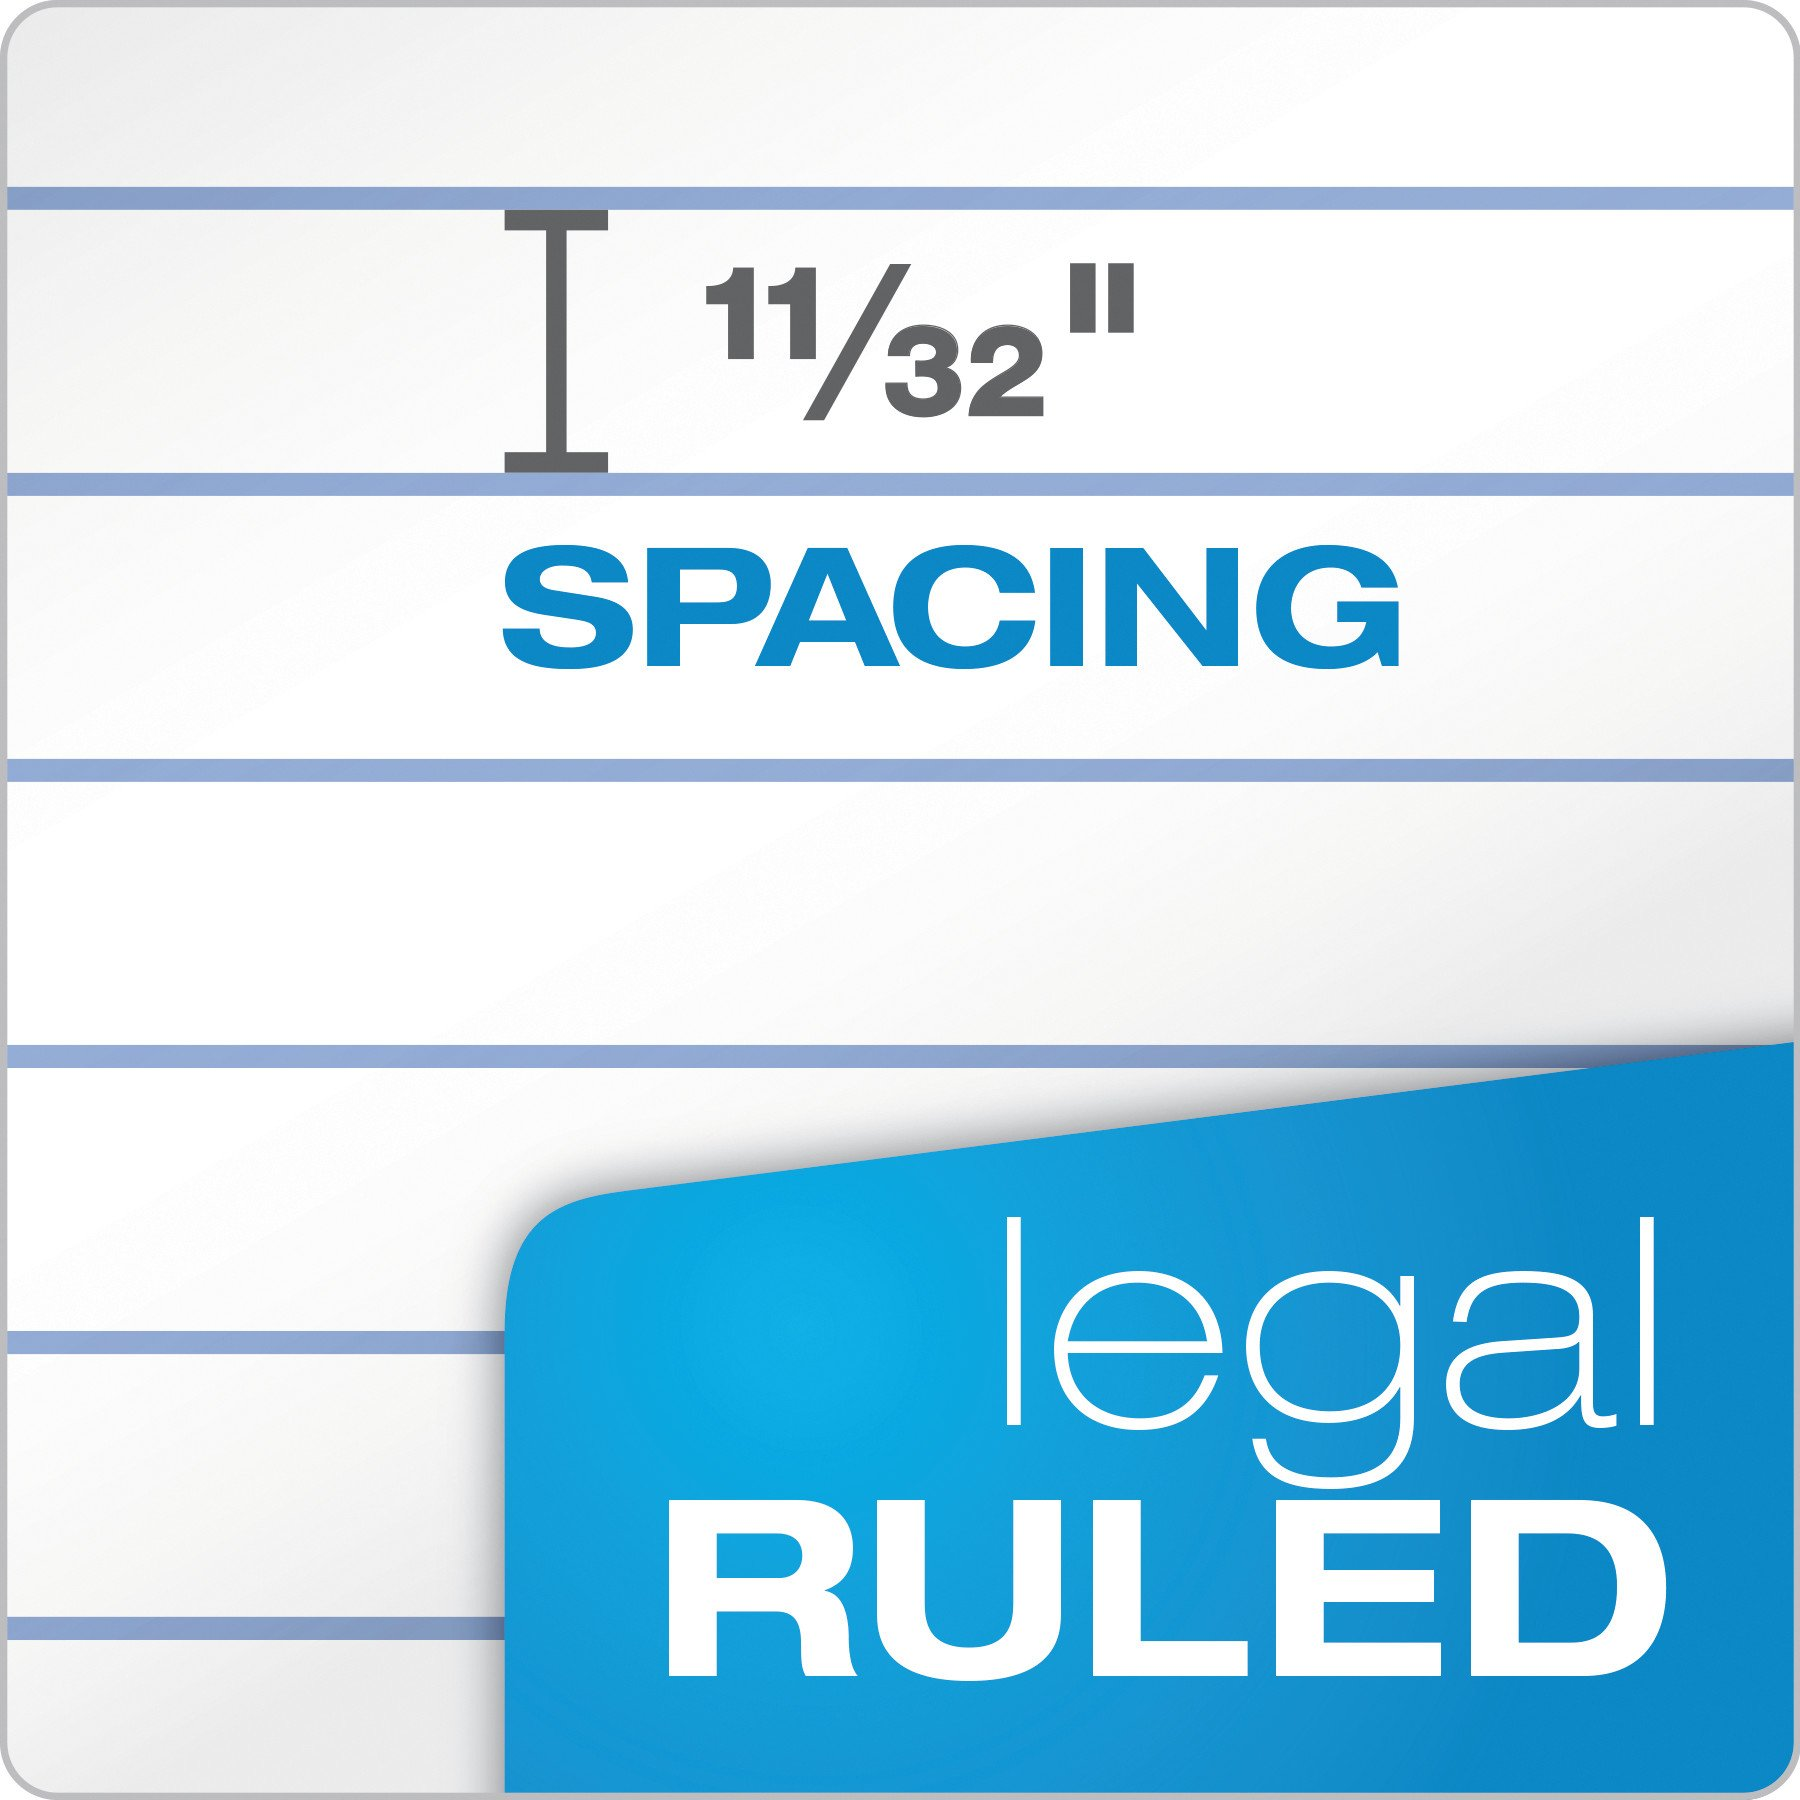 TOPS The Legal Pad Plus Writing Pads, 8-1/2'' x 14'', Legal Rule, 50 Sheets, 12 Pack (71573) by TOPS (Image #4)